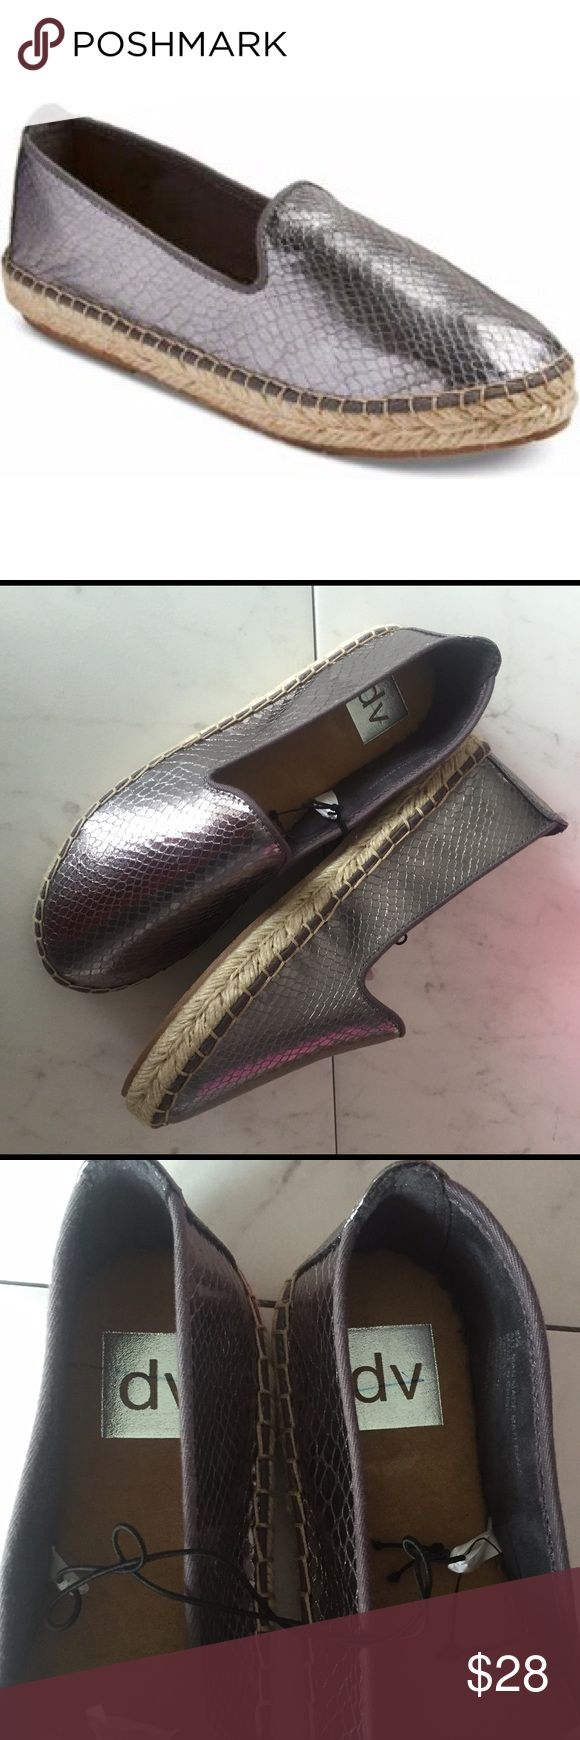 DV • Silver Espadrilles NWT! Silver espadrilles  from DV. Never worn, mark on label on inside sole. No other flaws. No stains or holes. No trades. DV by Dolce Vita Shoes Espadrilles